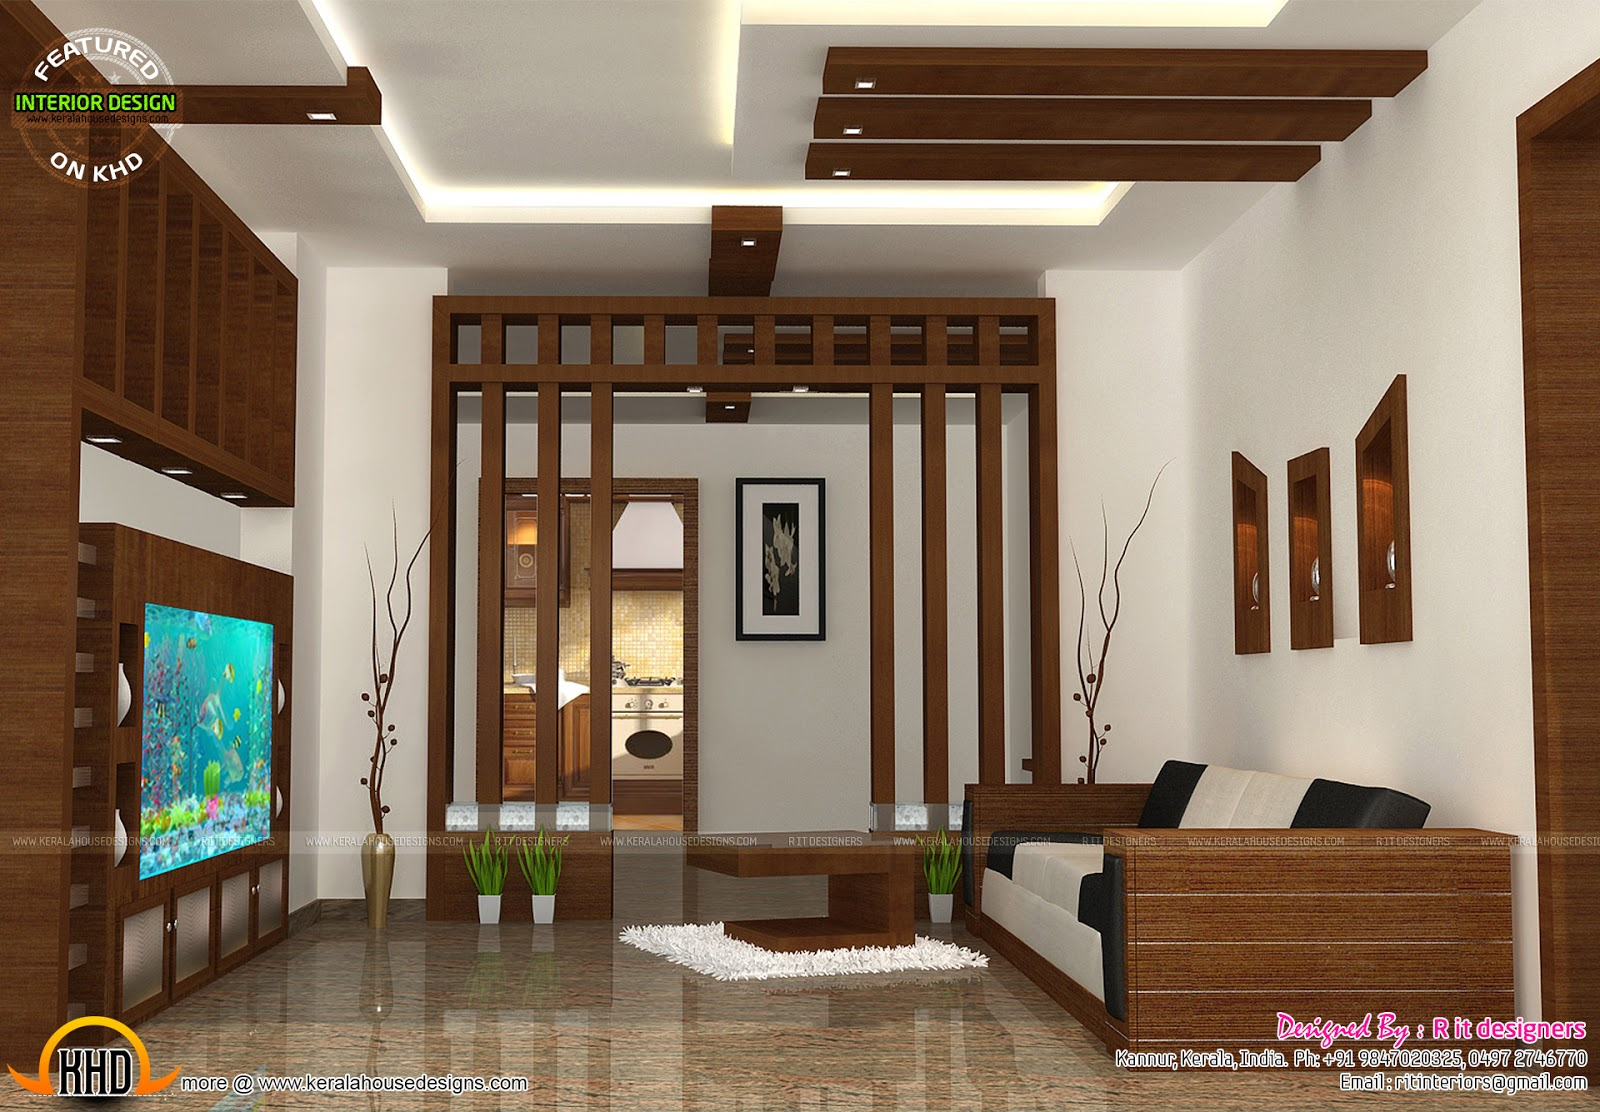 Wooden finish interiors kerala home design and floor plans for Interior designs in kerala